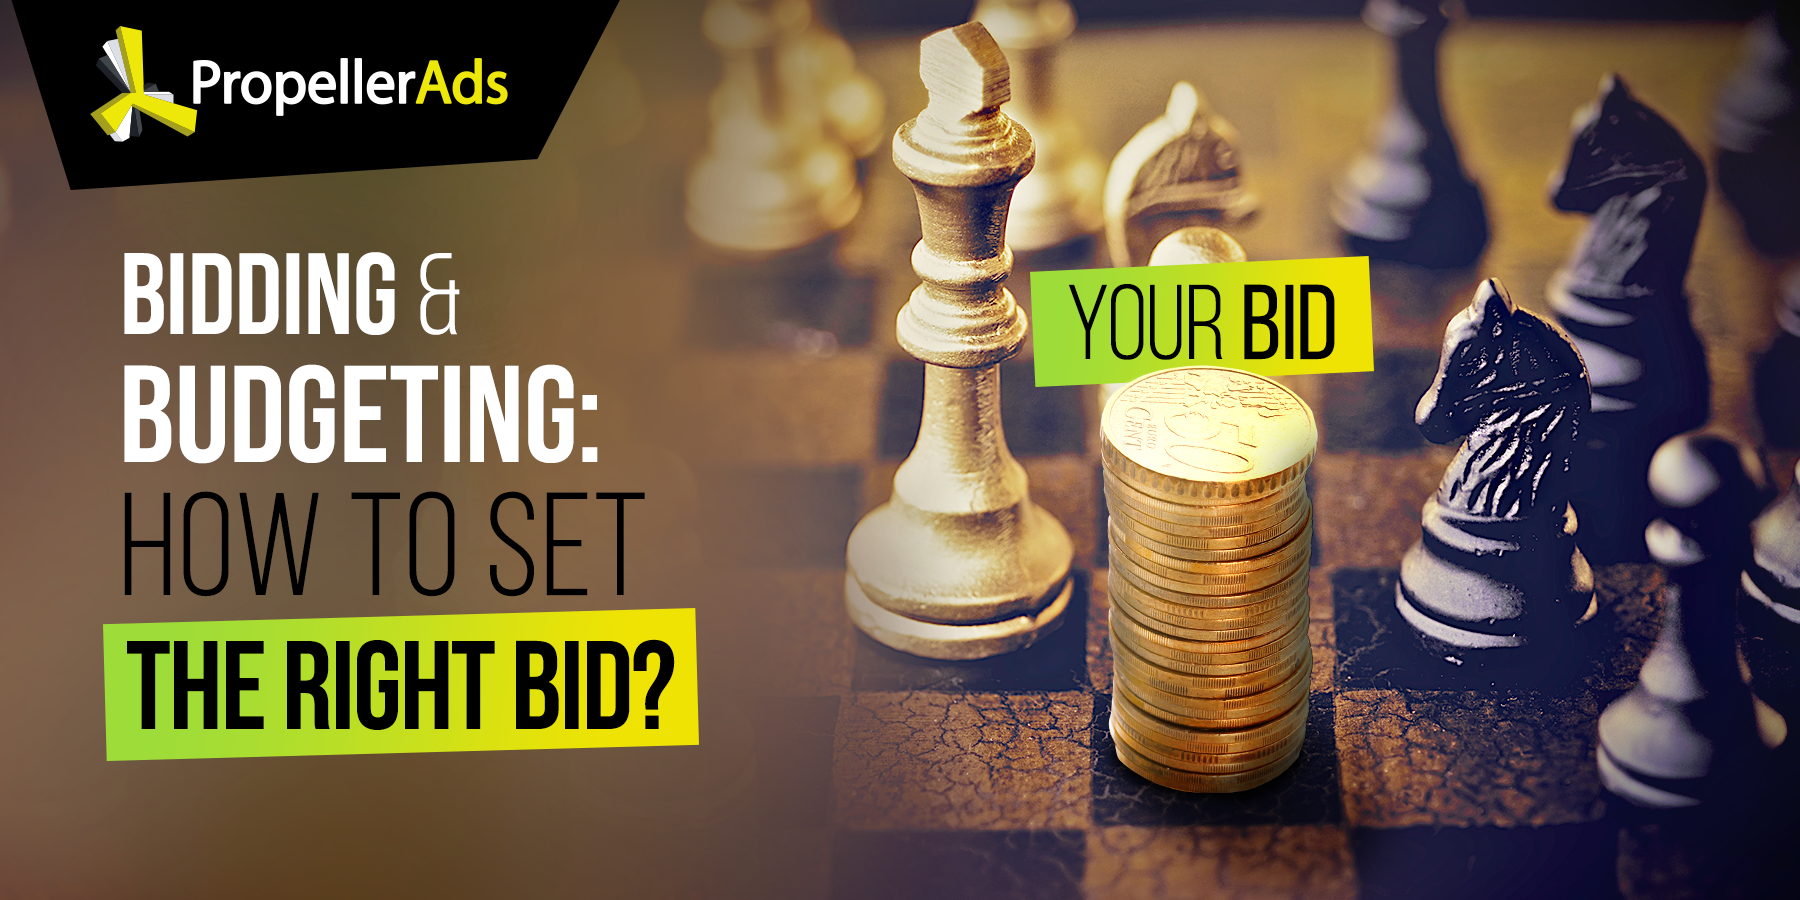 Bidding and Budgeting: How to Set the Right Bid for Your Paid Ads Campaign